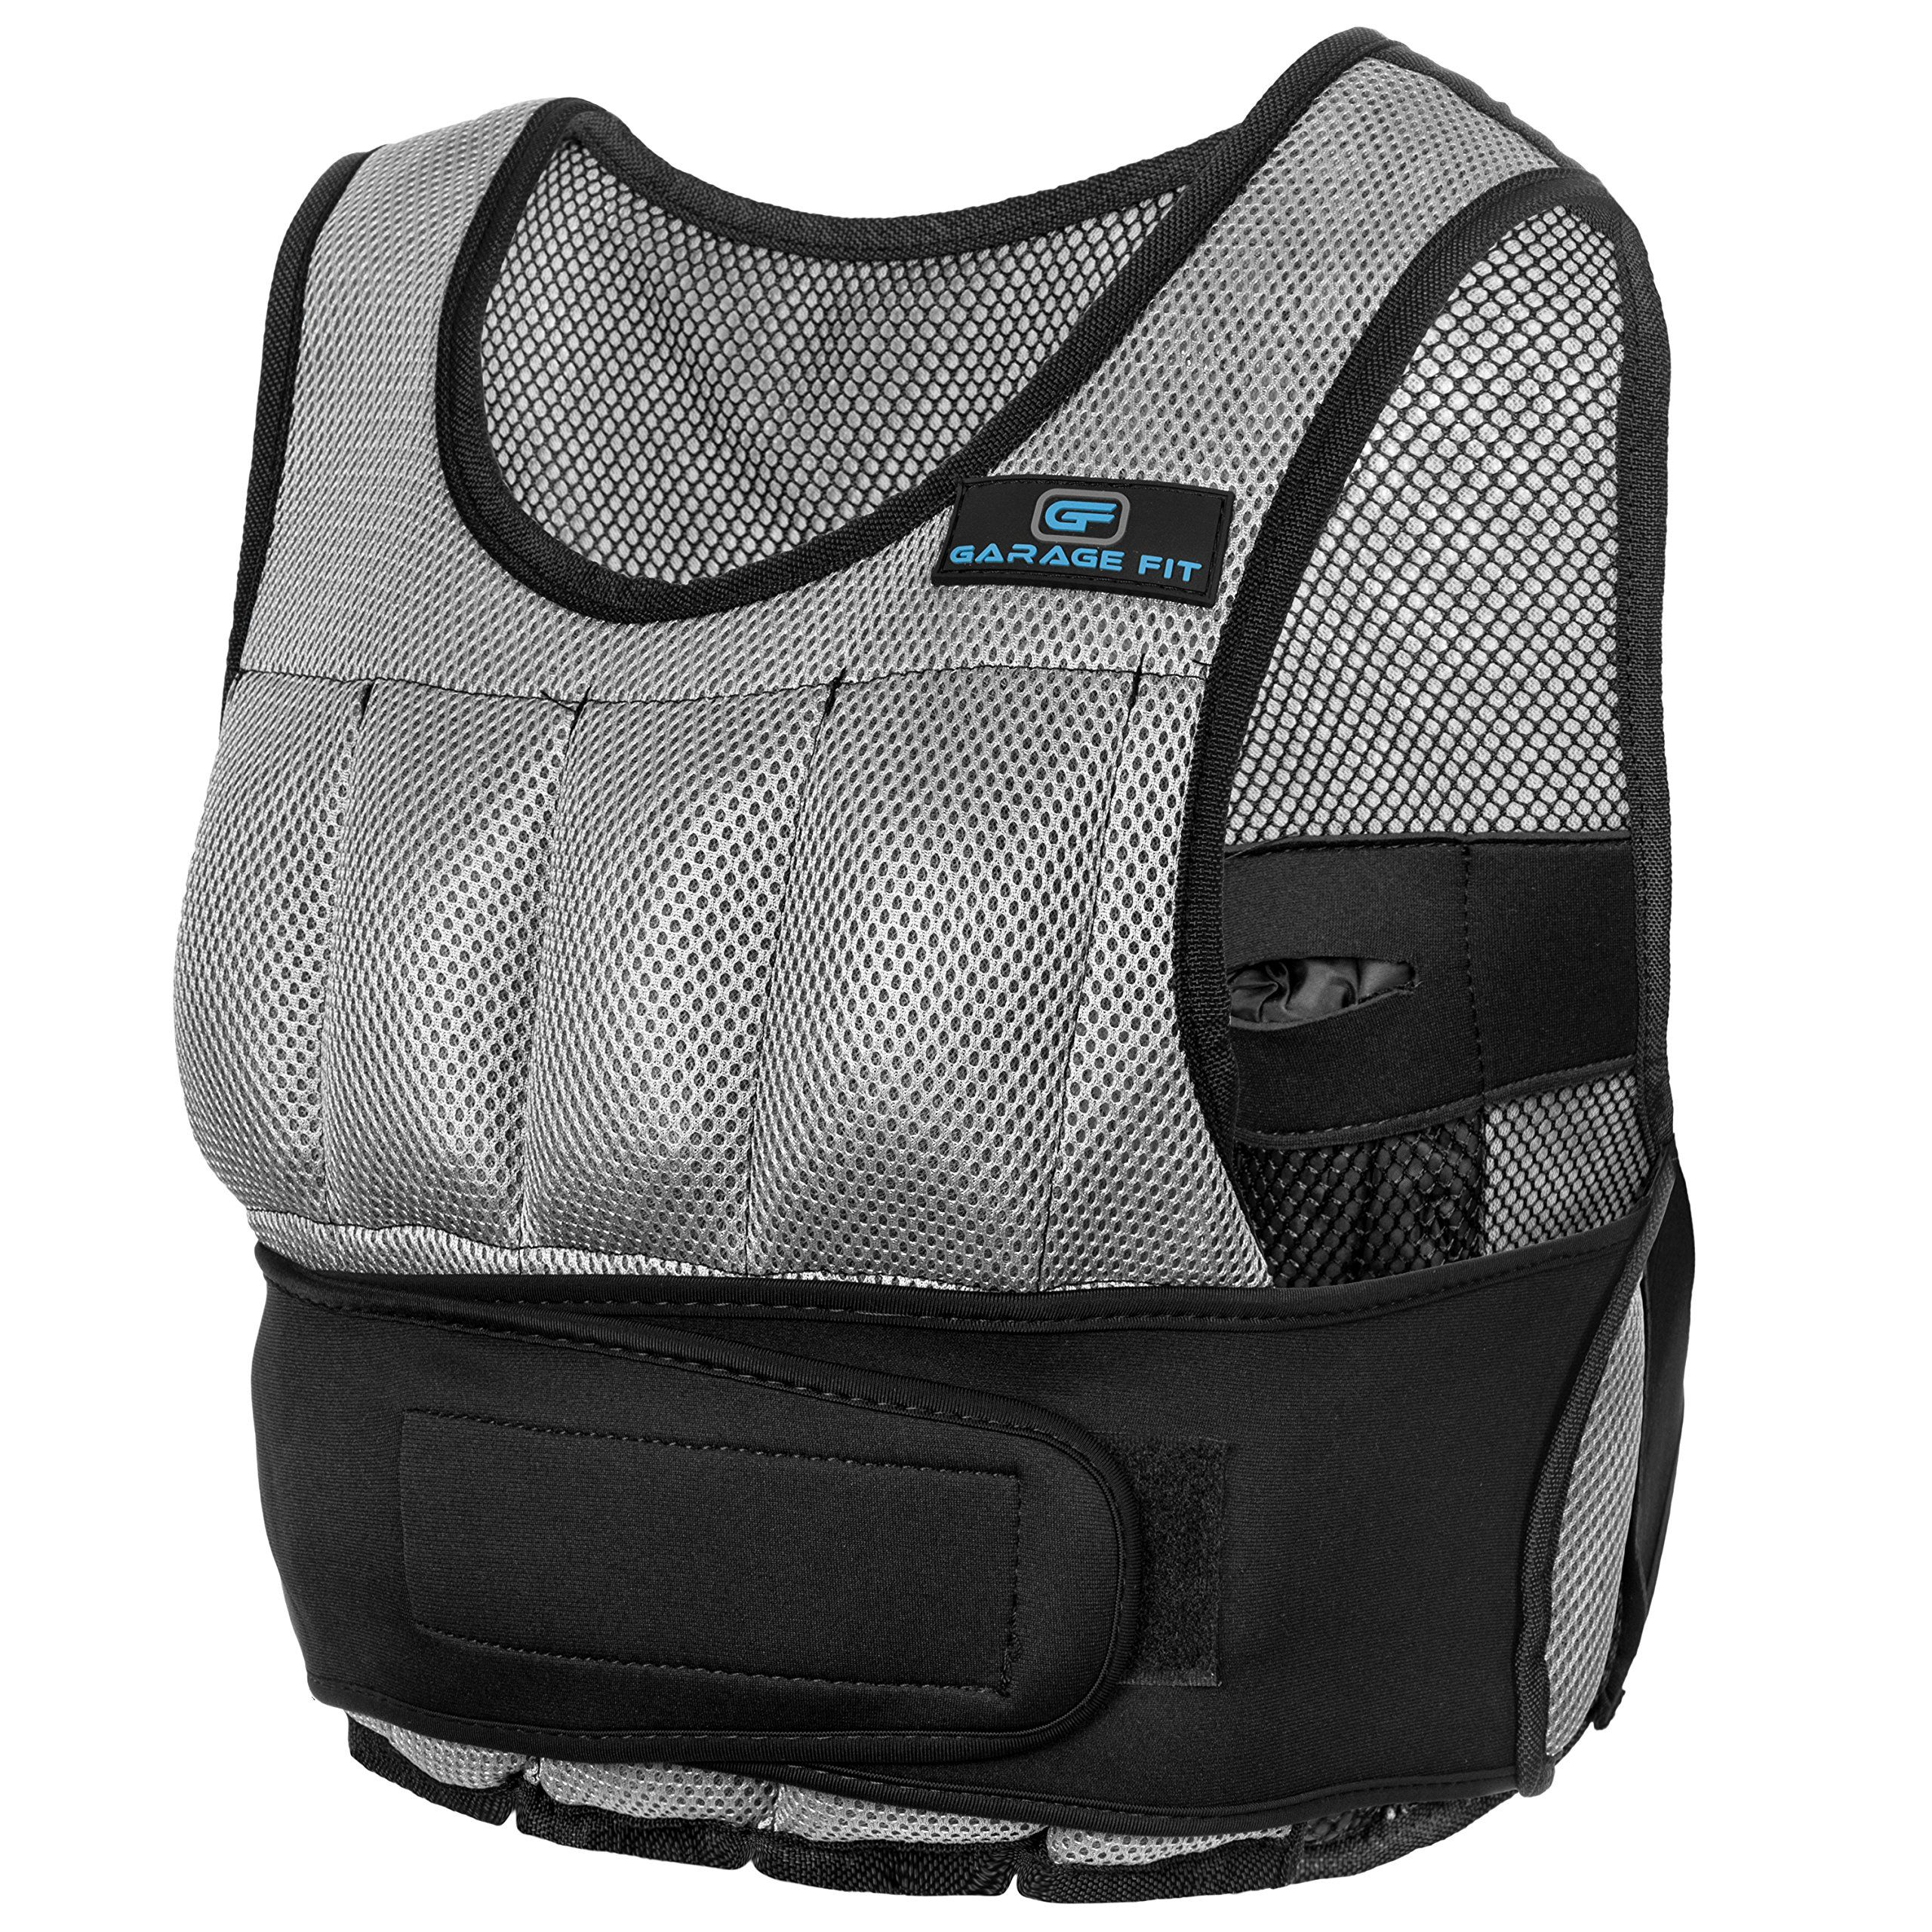 Weight Vest For Training (Gray, 10 lb) Adjustable